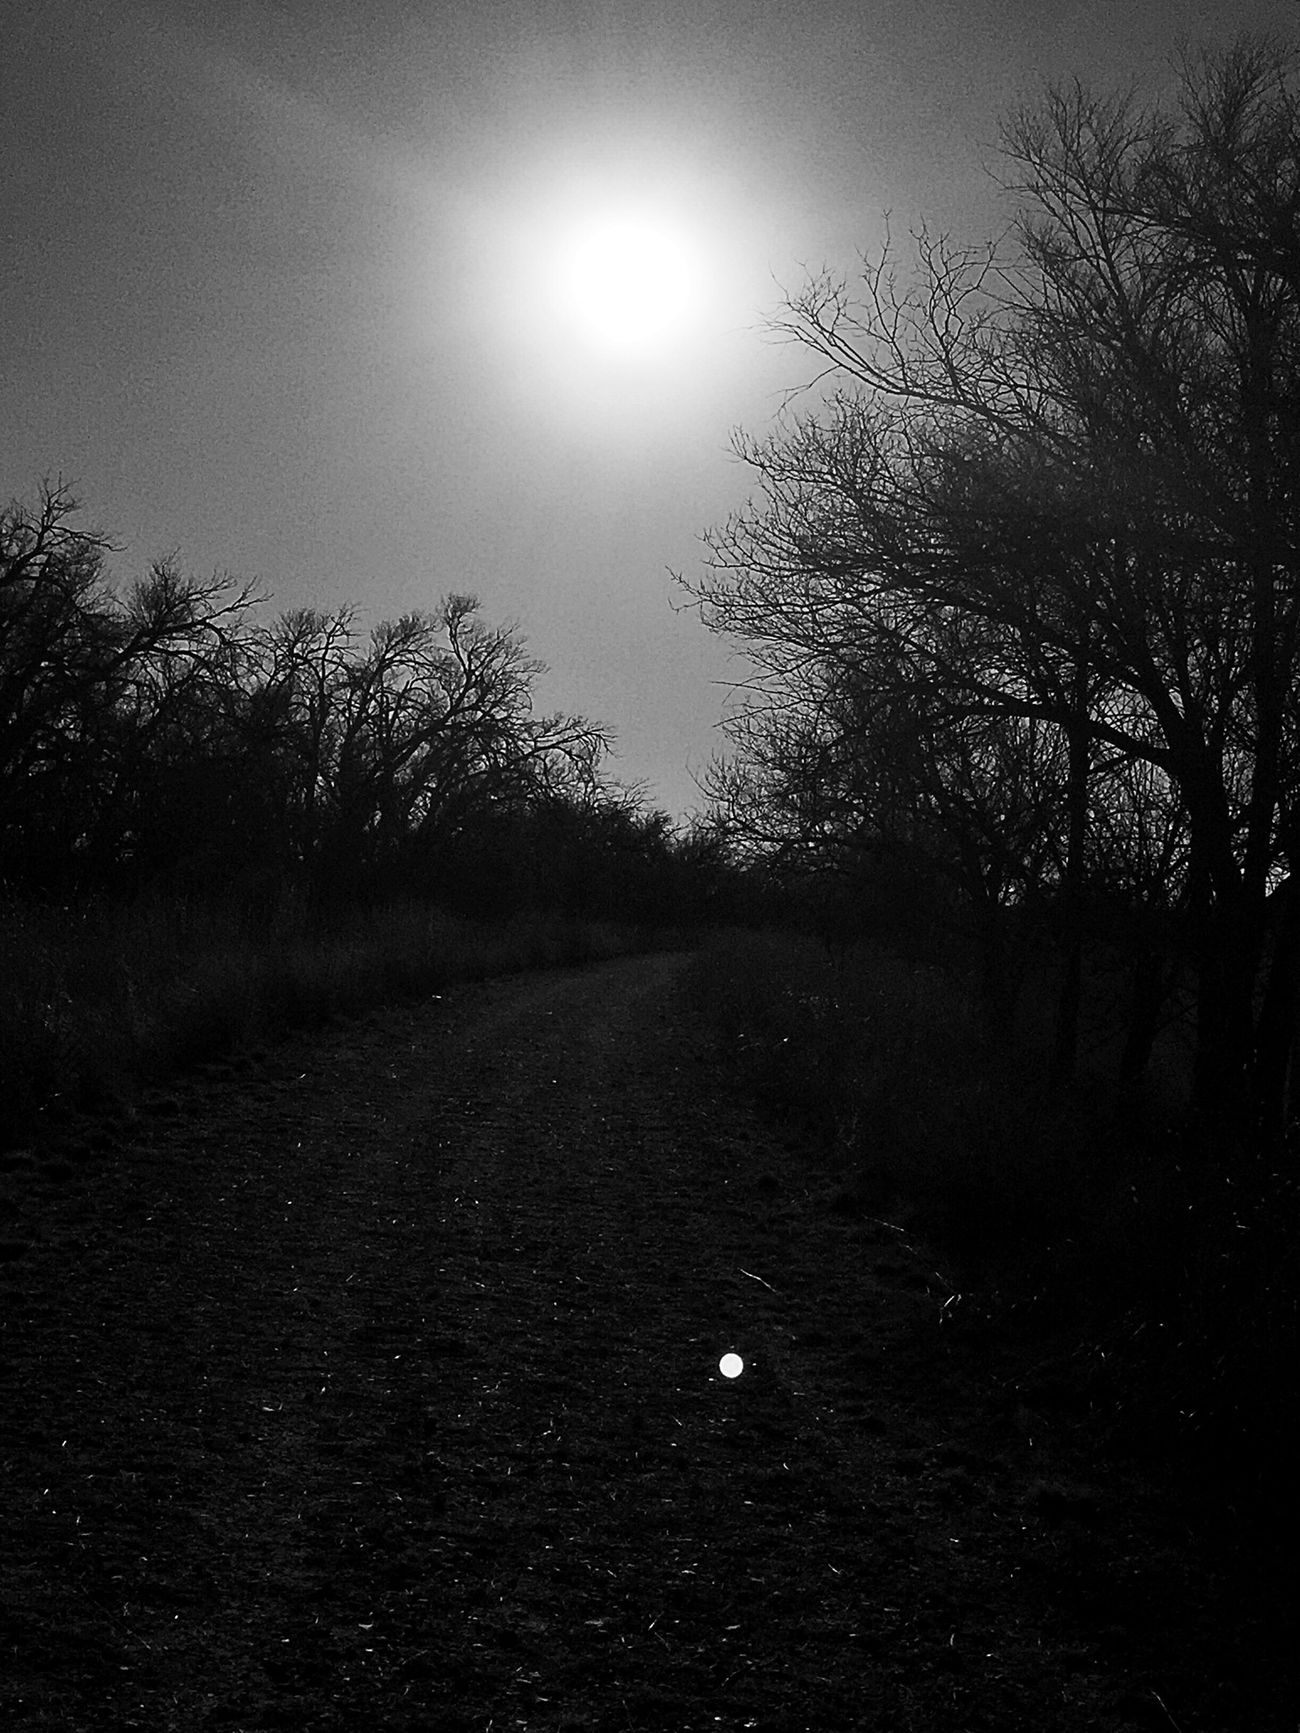 http://youtu.be/cZmTtjKOq8E Fortheloveofblackandwhite Mood And Music Bnw_collection Eye4photography  EyeEm Nature Lover Naturelovers Landscape_Collection Texas Panhandle Tadaa Community EyeEm Untold Stories Buffalo Lake Wildlife Refuge Texas Landscape Chasing The Sun We Own The Light Darkness And Light Treehugging Silhouette Light And Love Always